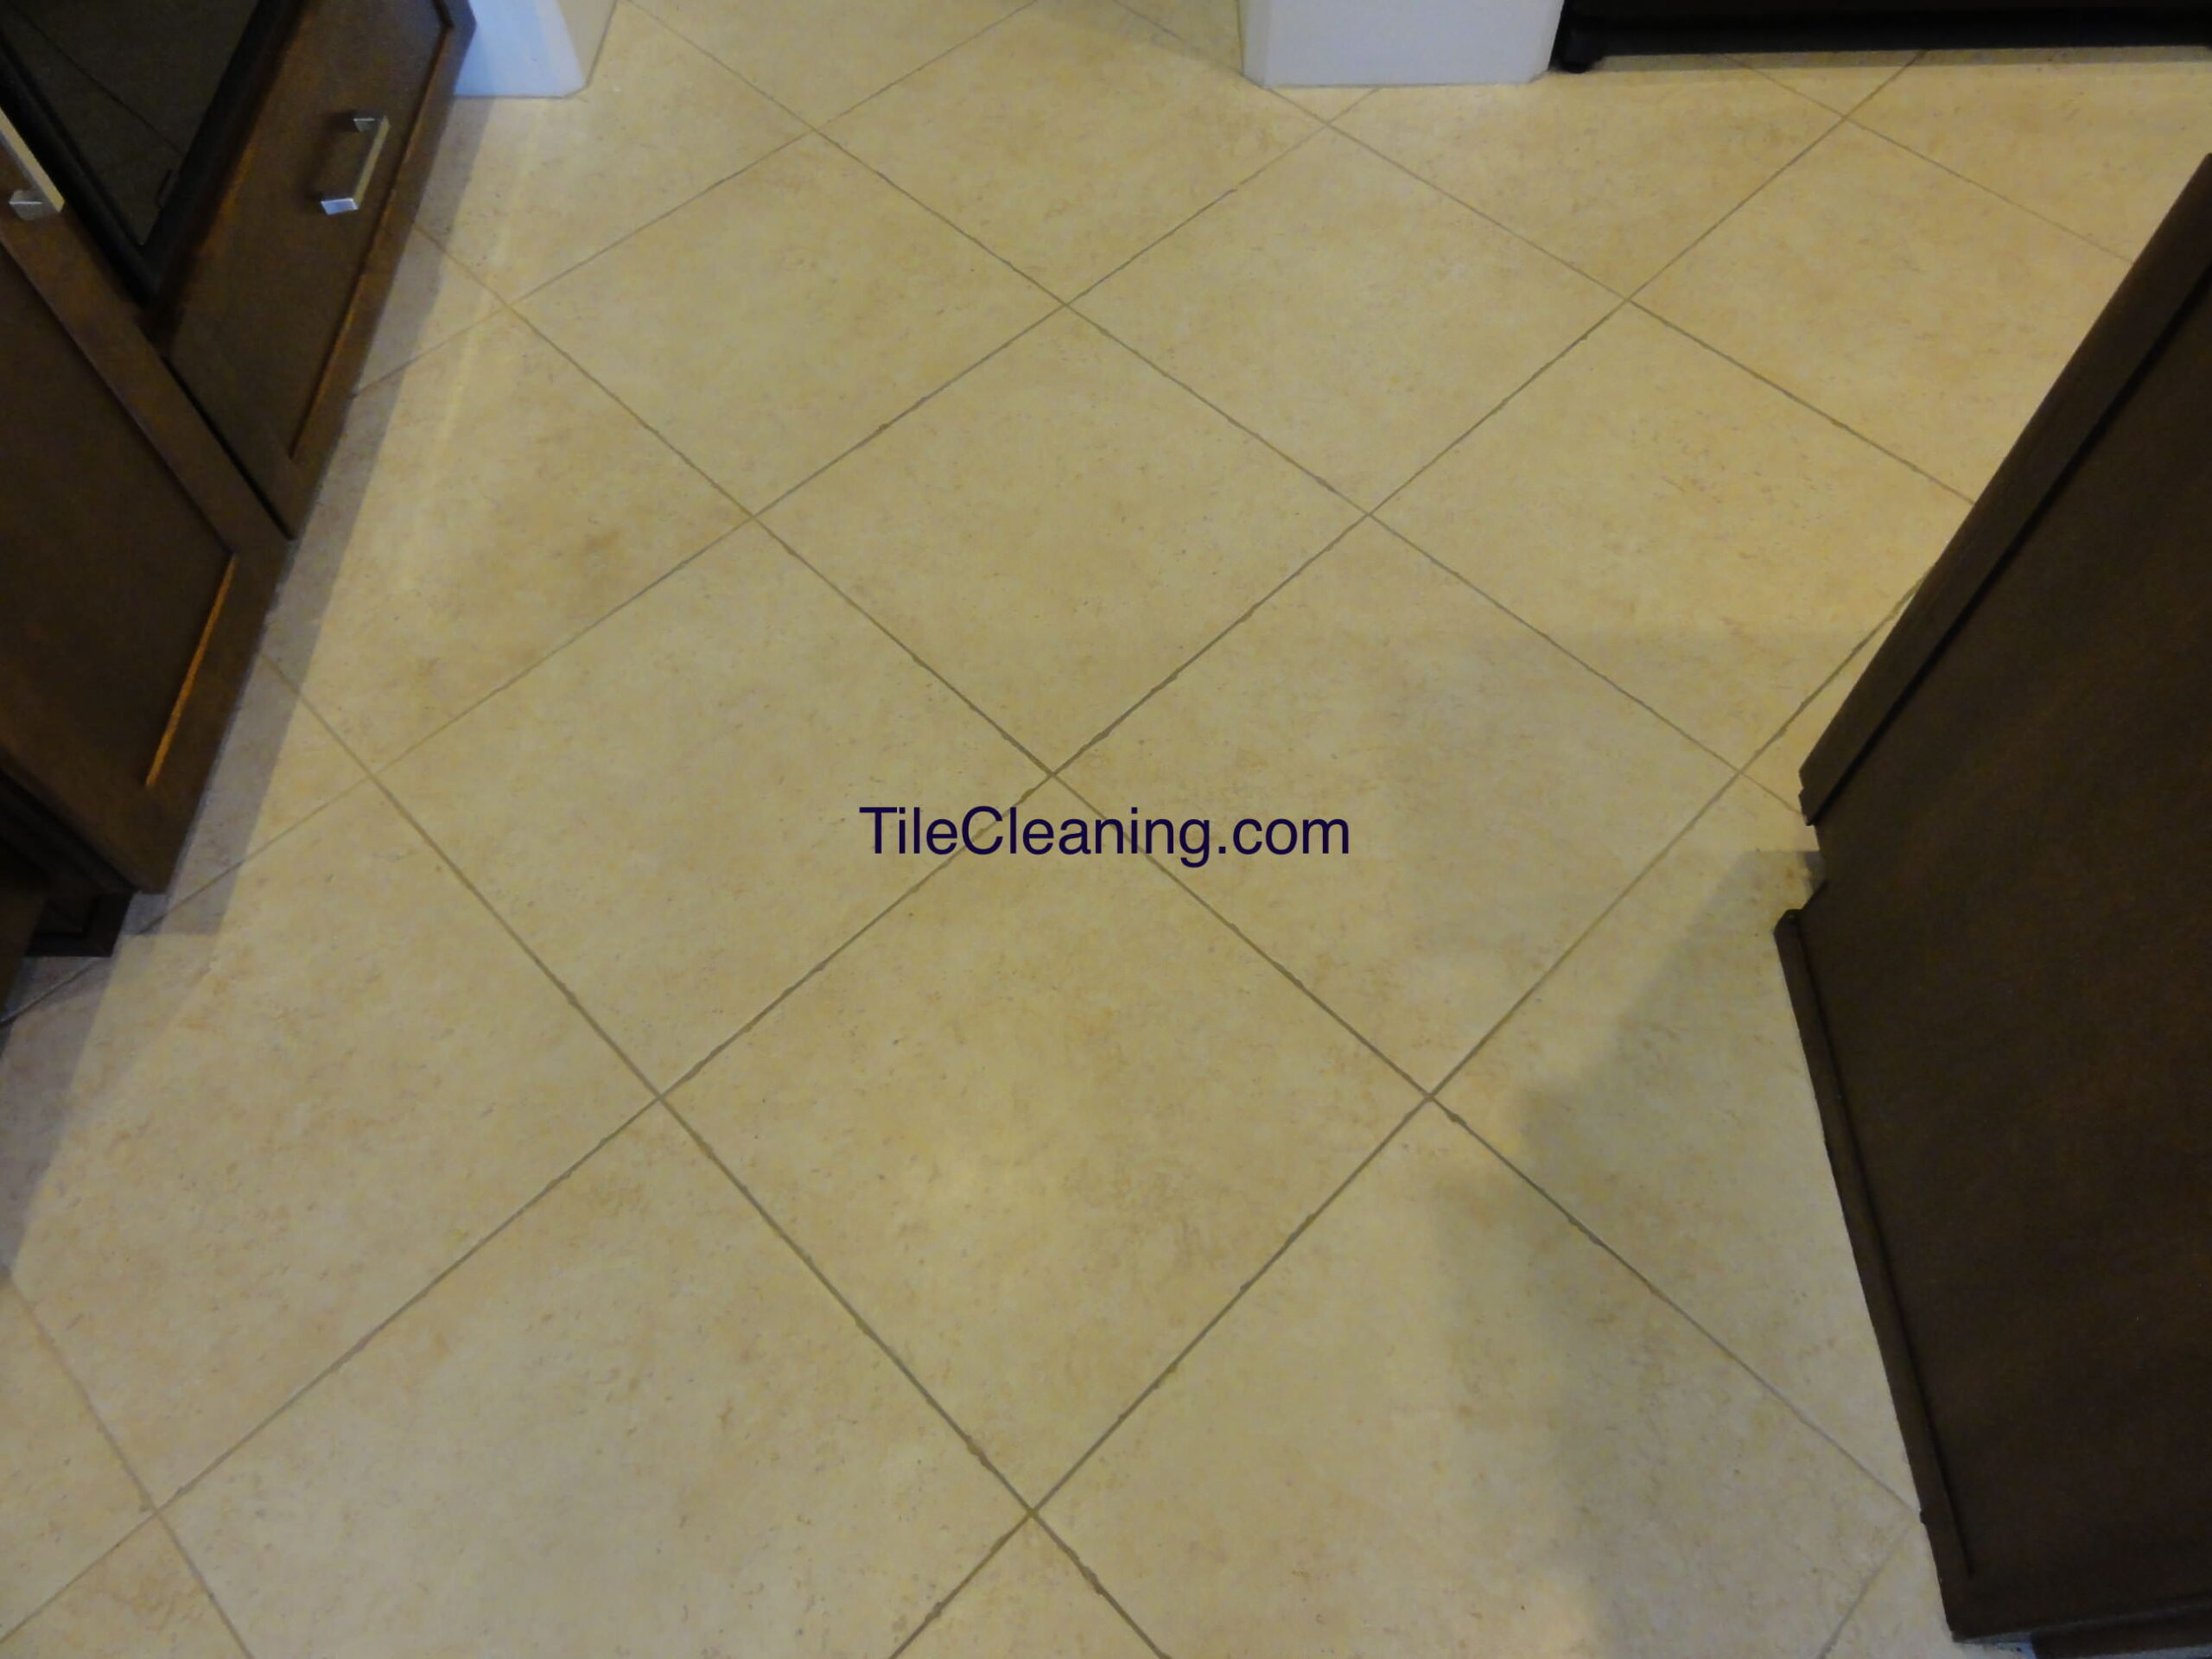 Tile_Cleaning_Before